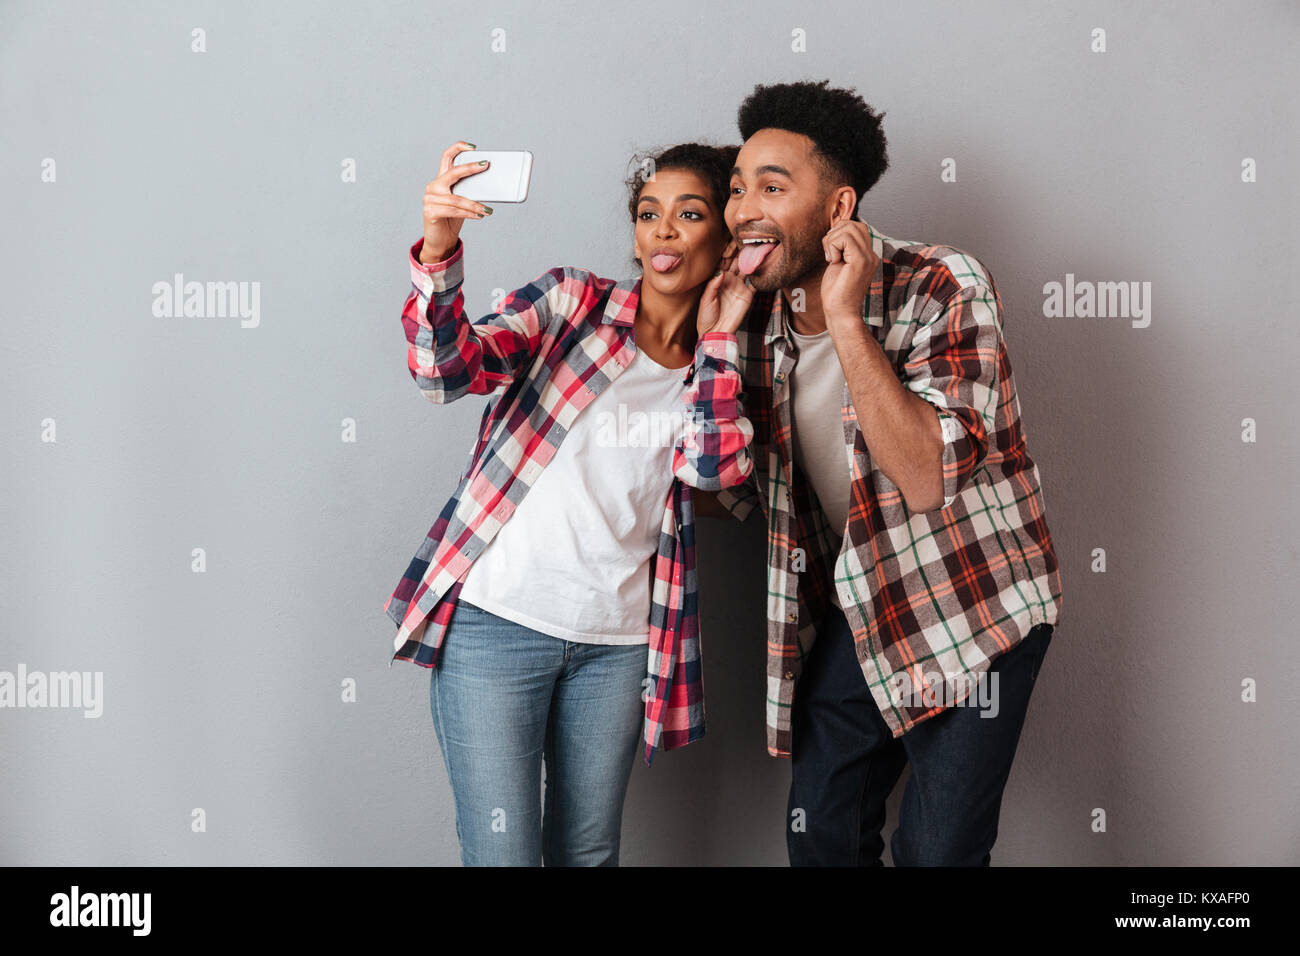 Portrait of a happy young african couple grimacing while standing together and taking a selfie isolated over gray - Stock Image